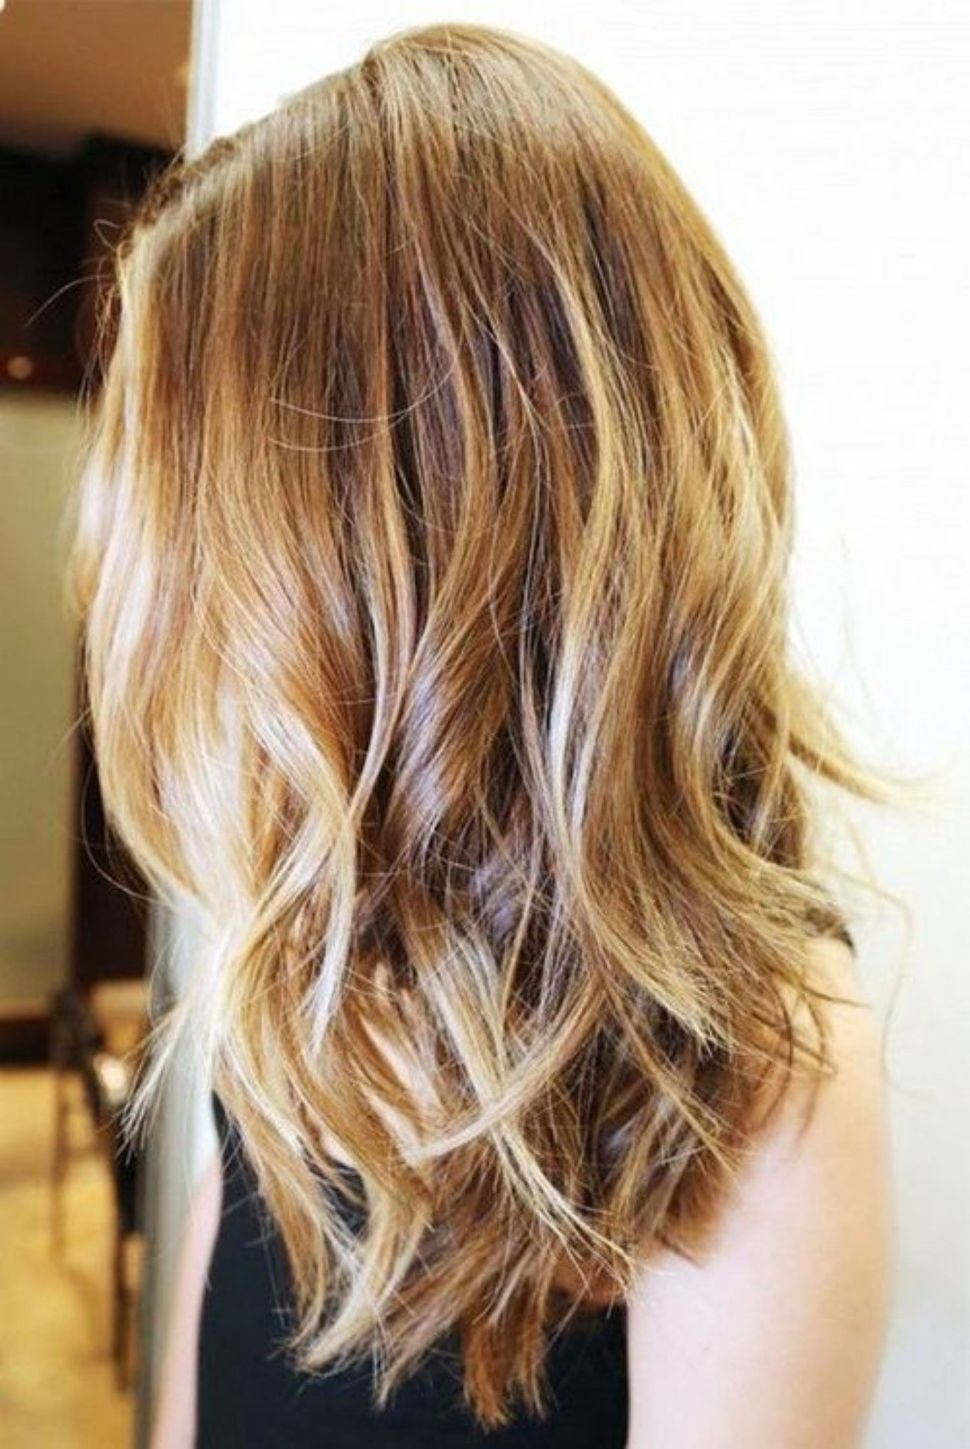 70 Devastatingly Cool Haircuts For Thin Hair In 2020 Hairstyles For Thin Hair Thin Hair Haircuts Long Hair Styles